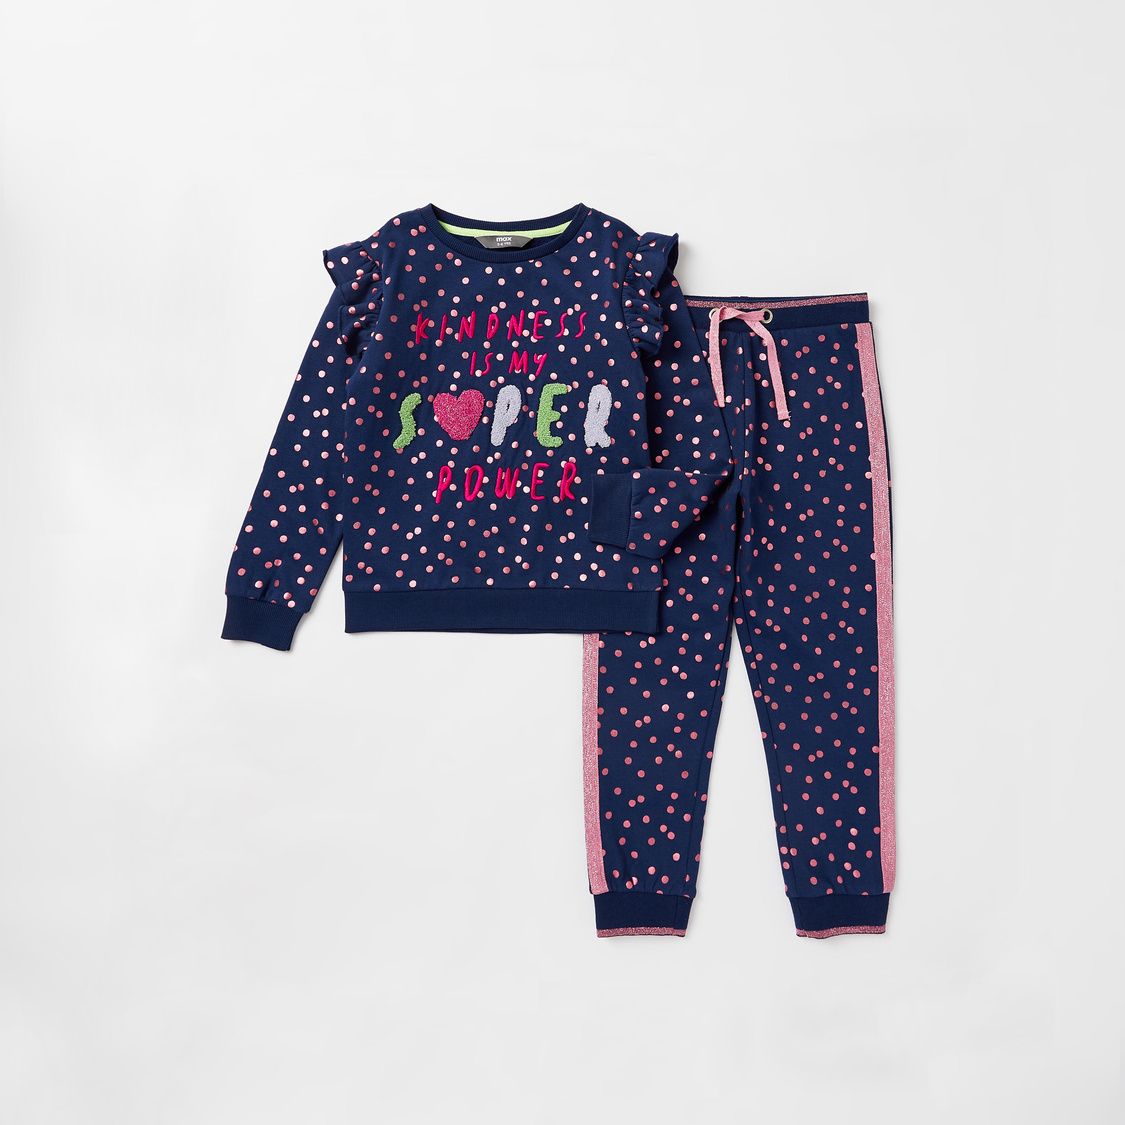 Embroidered Text Detail Long Sleeves Sweatshirt with Jog Pants